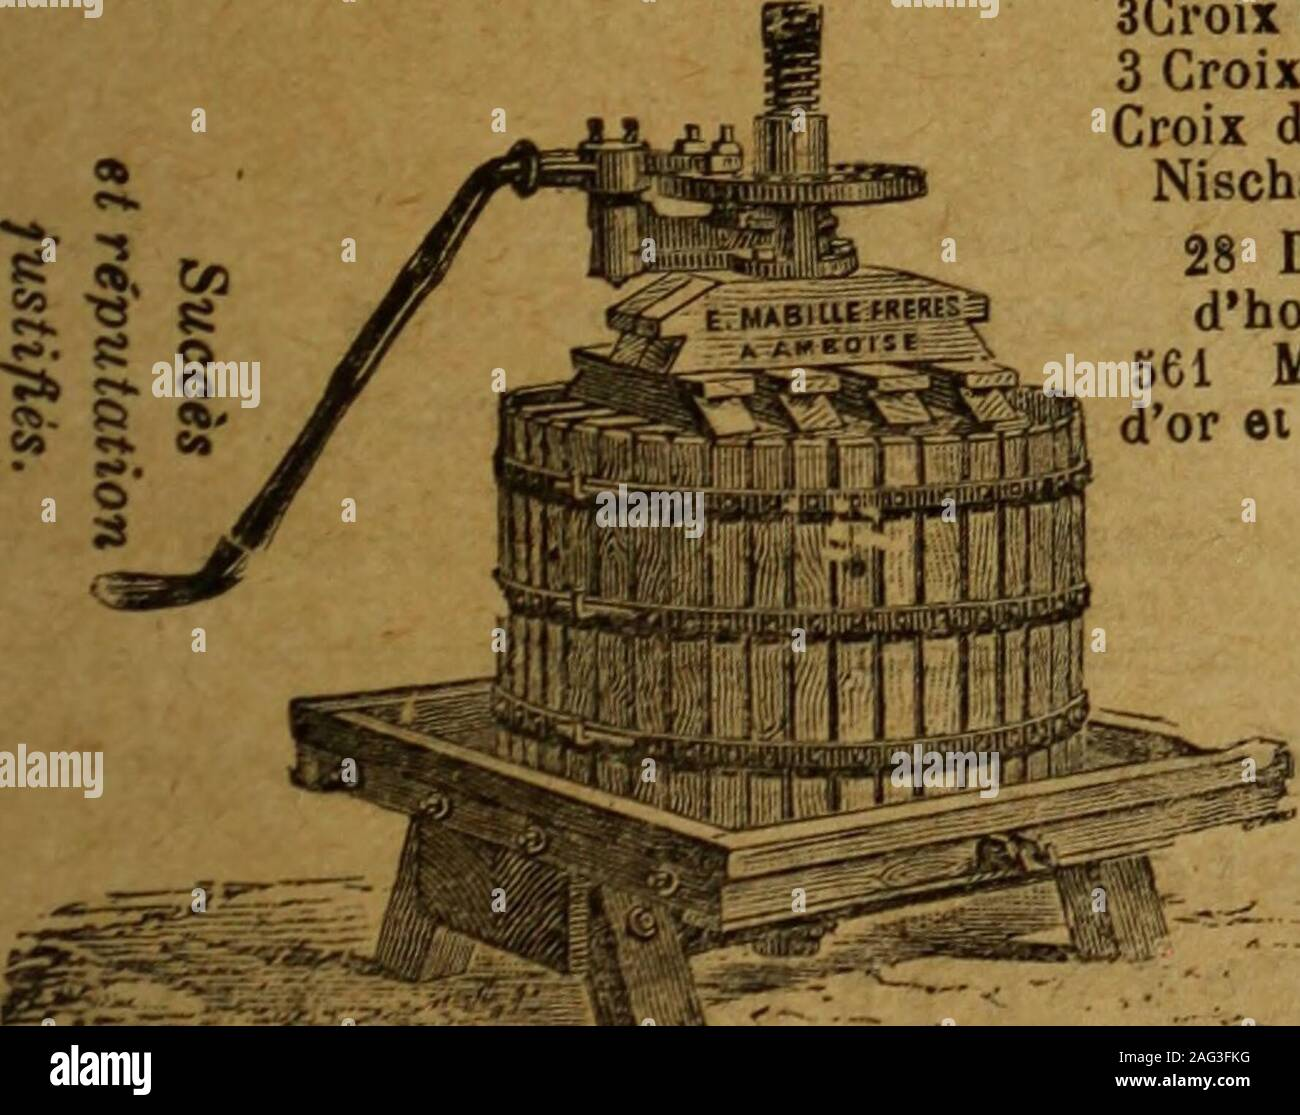 La Conservation Du Vin vinification stock photos & vinification stock images - page